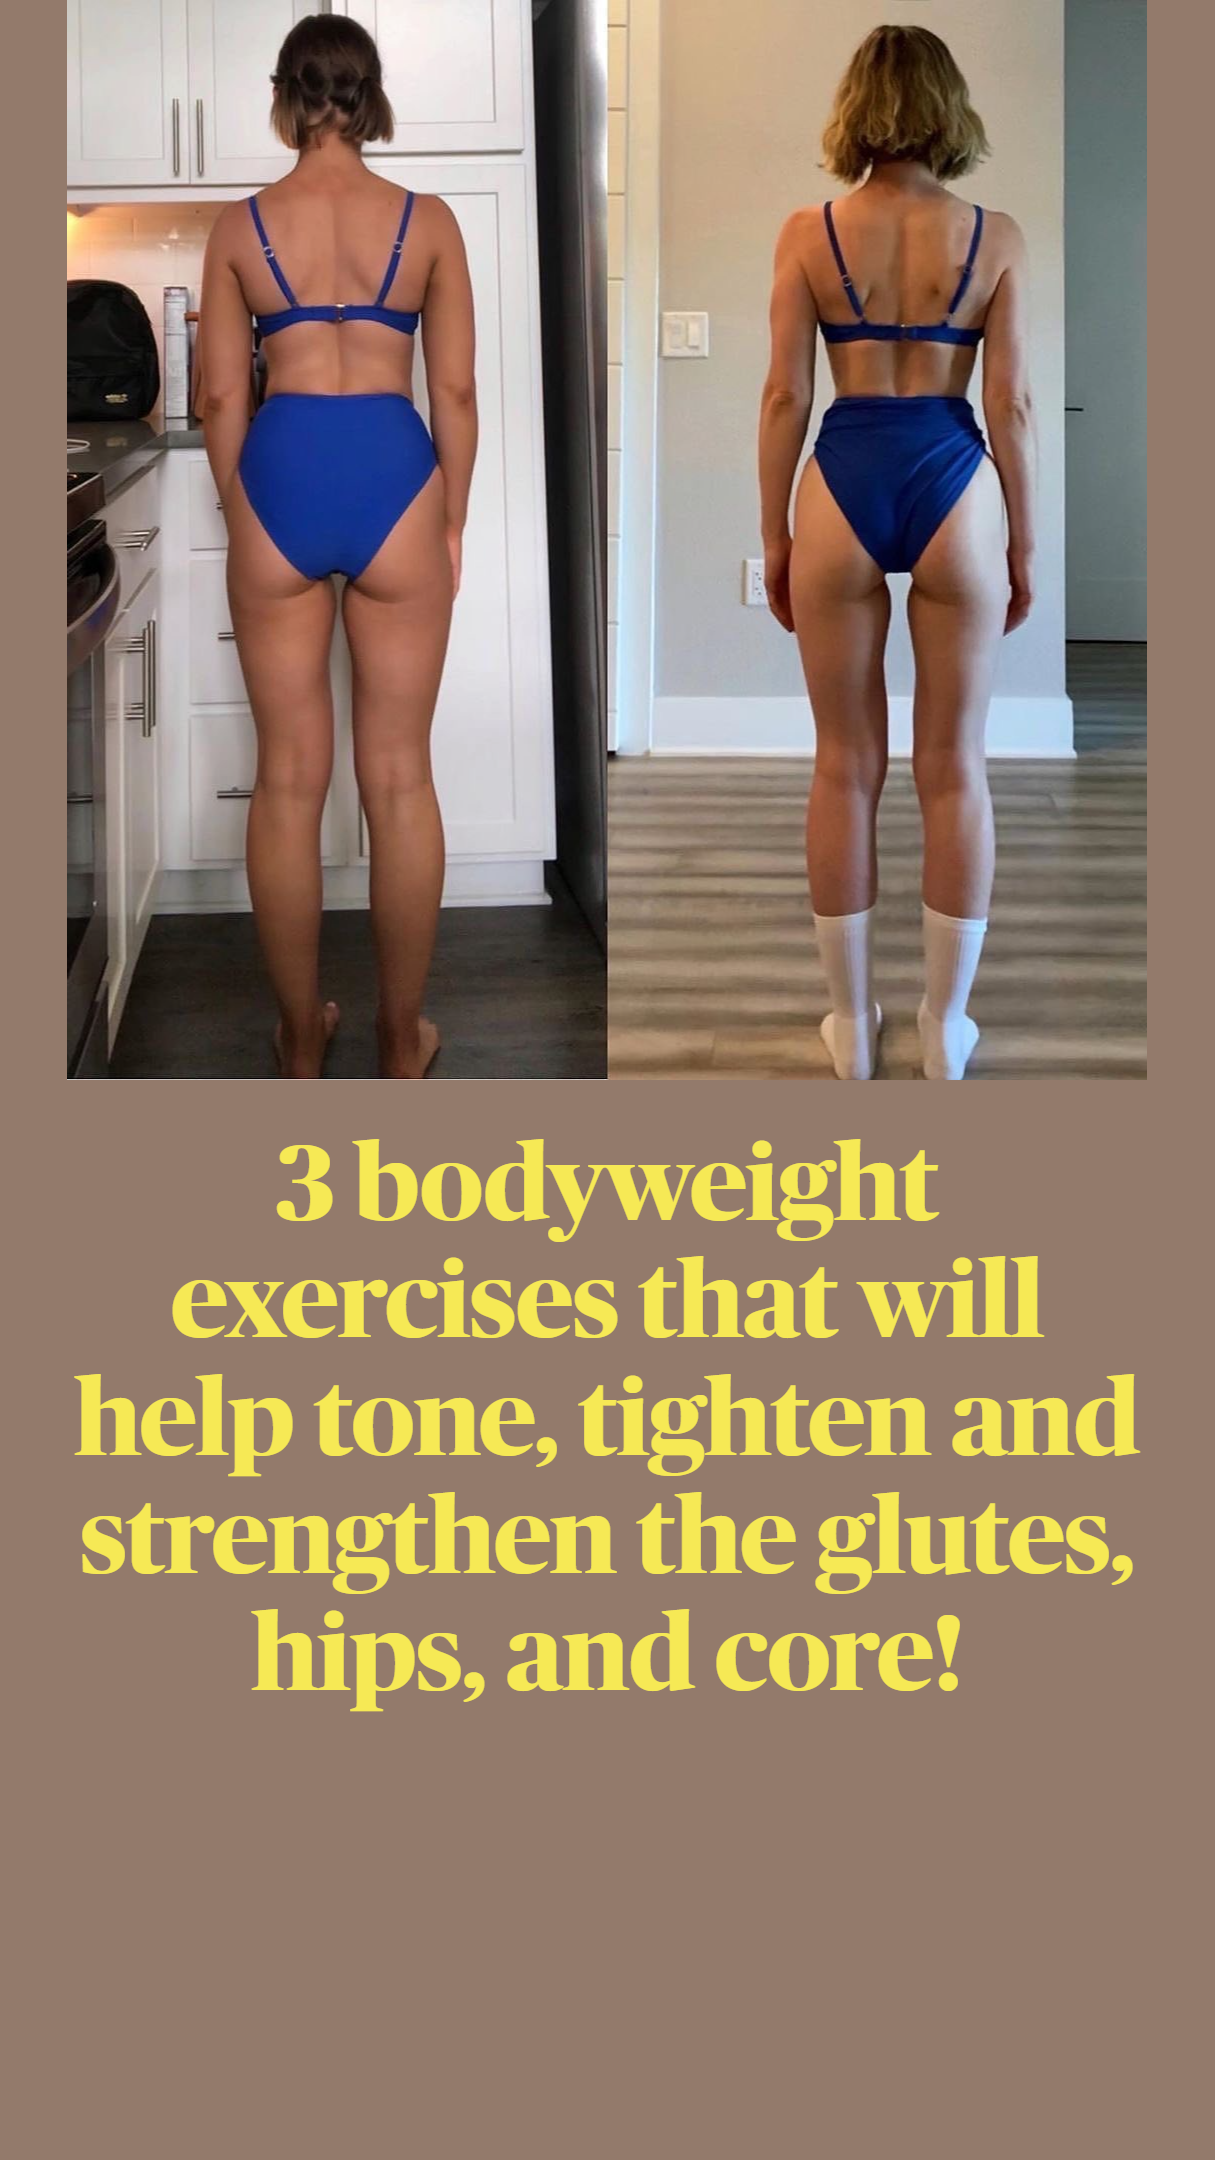 3 bodyweight exercises that will help tone, tighte